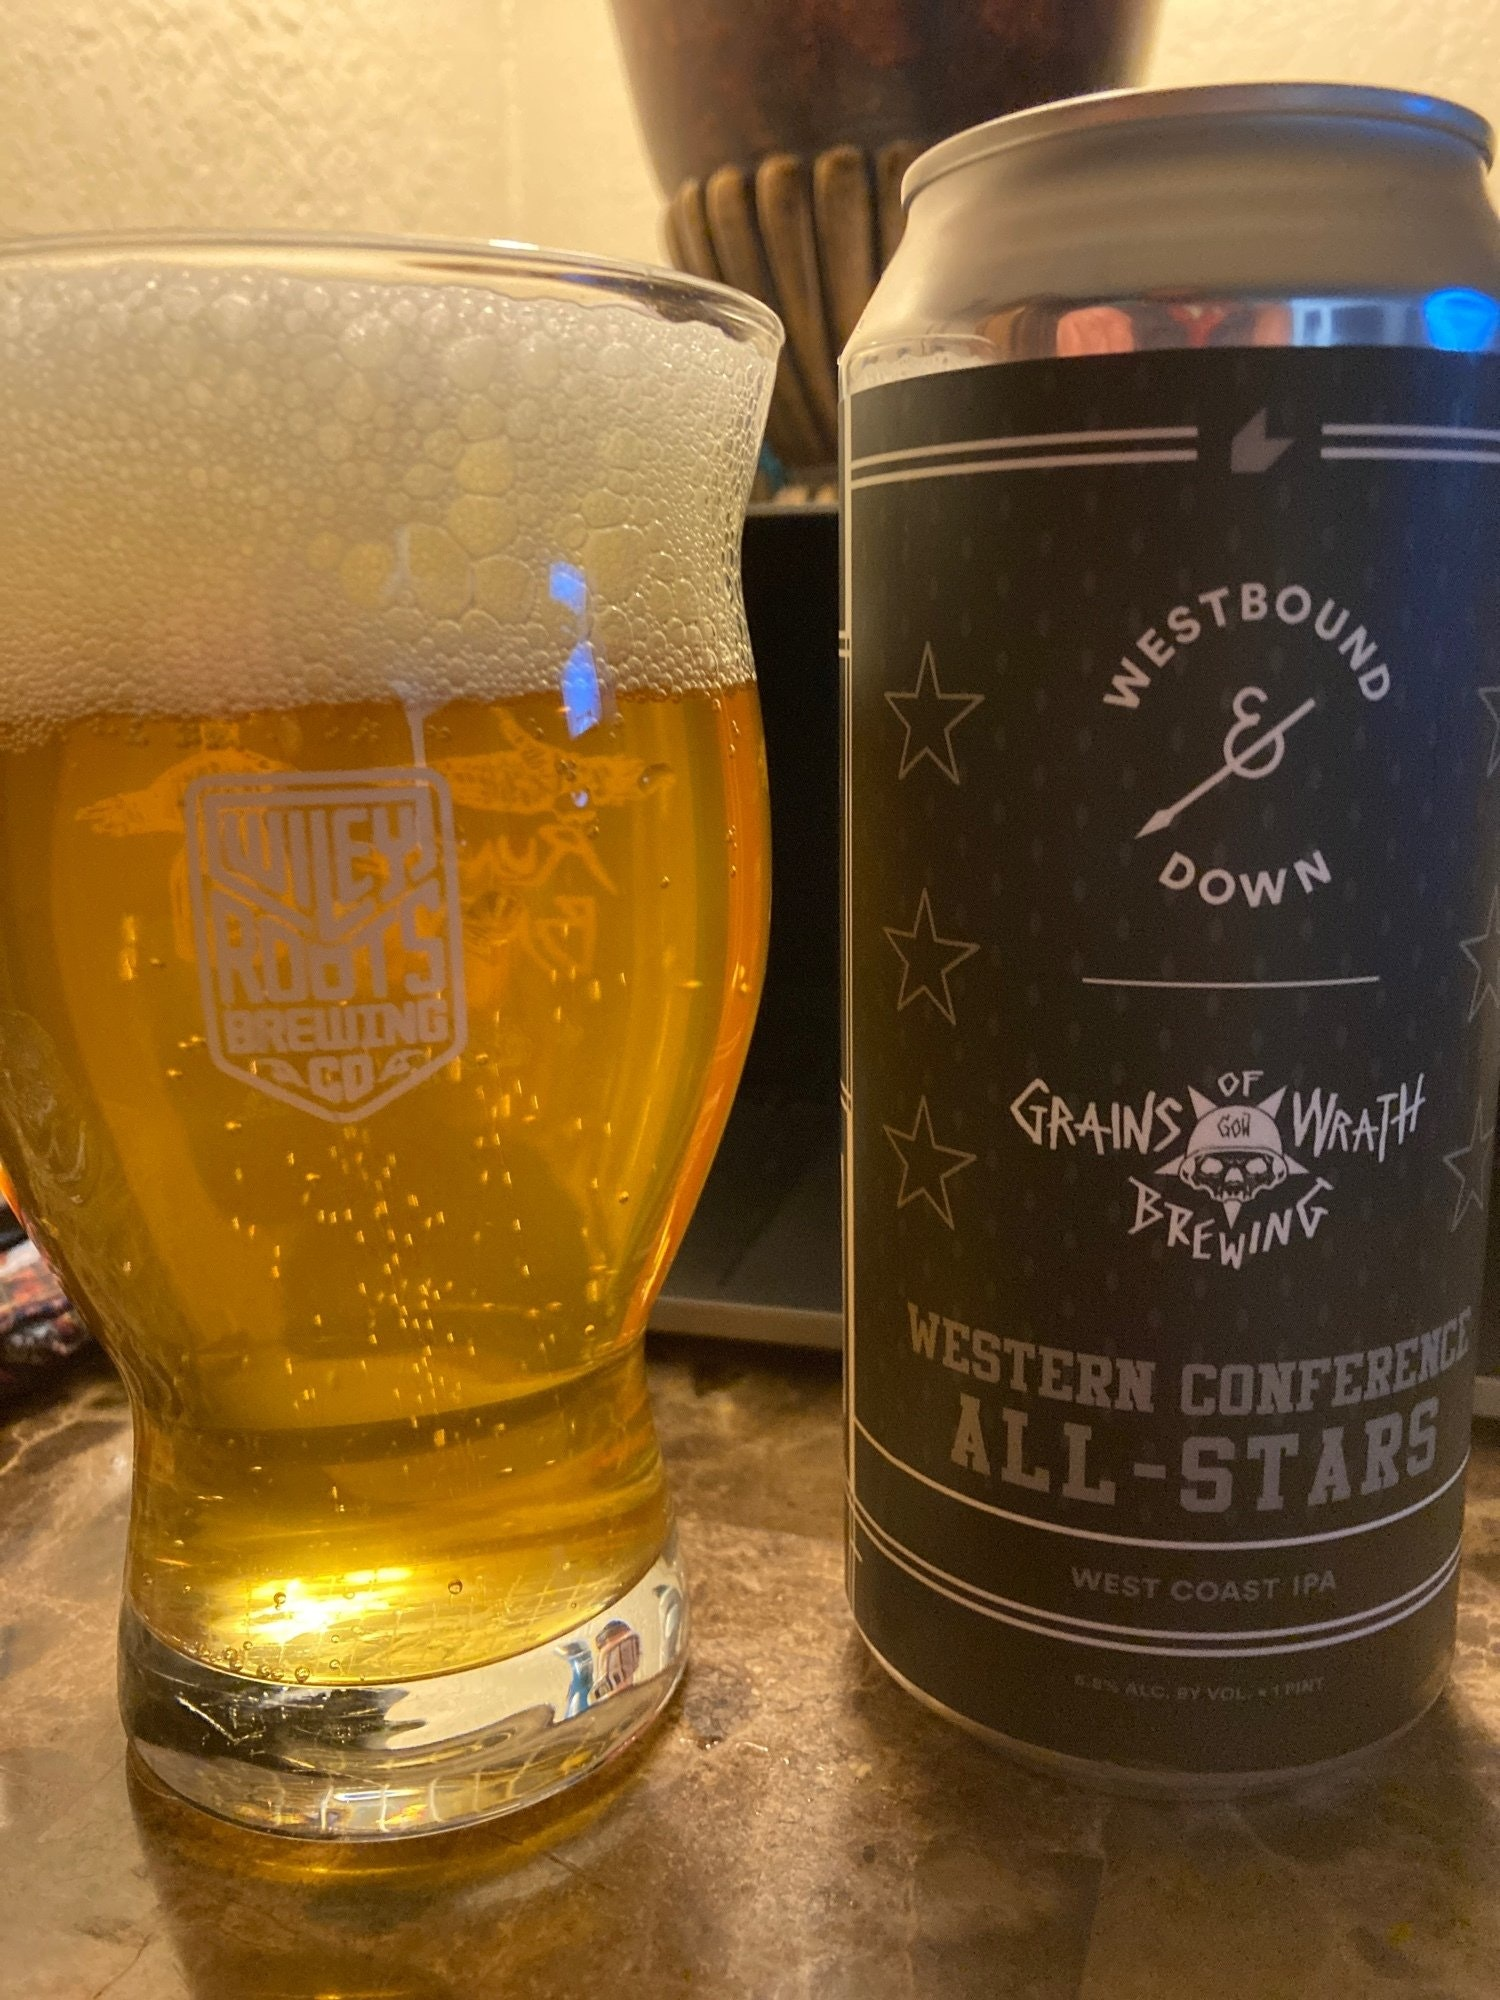 Western Conference All-Stars - Westbound & Down Brewing (Idaho Springs, CO)